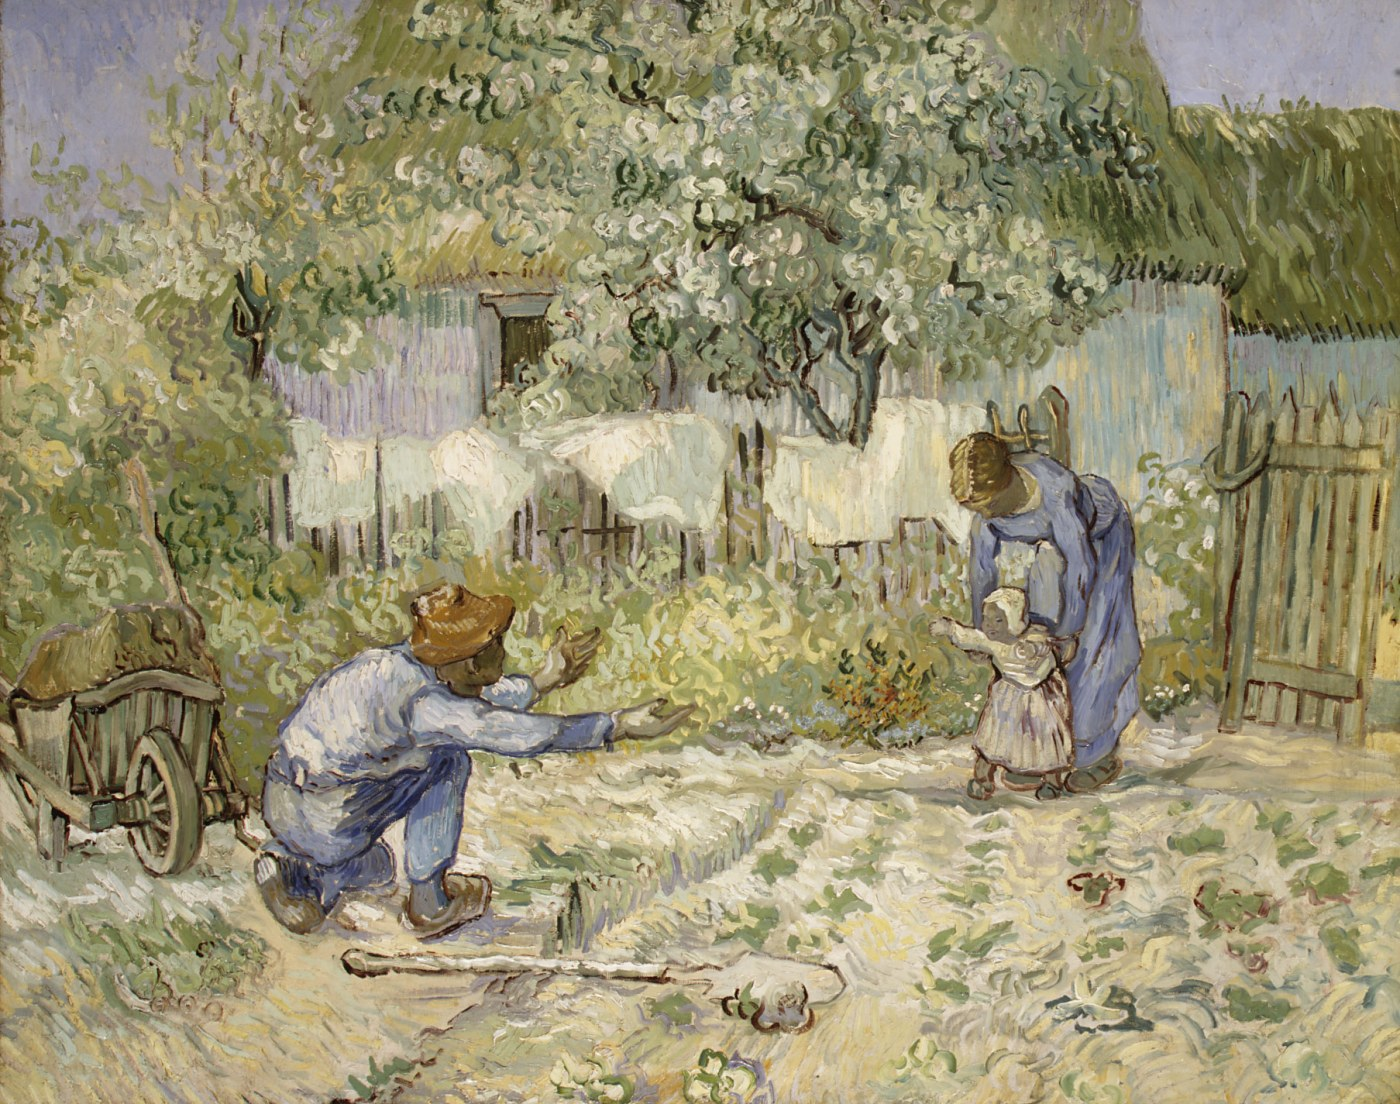 Working Title/Artist: First Steps, after Millet Department: European Paintings Culture/Period/Location:  HB/TOA Date Code:  Working Date: 1890 scanned for collections